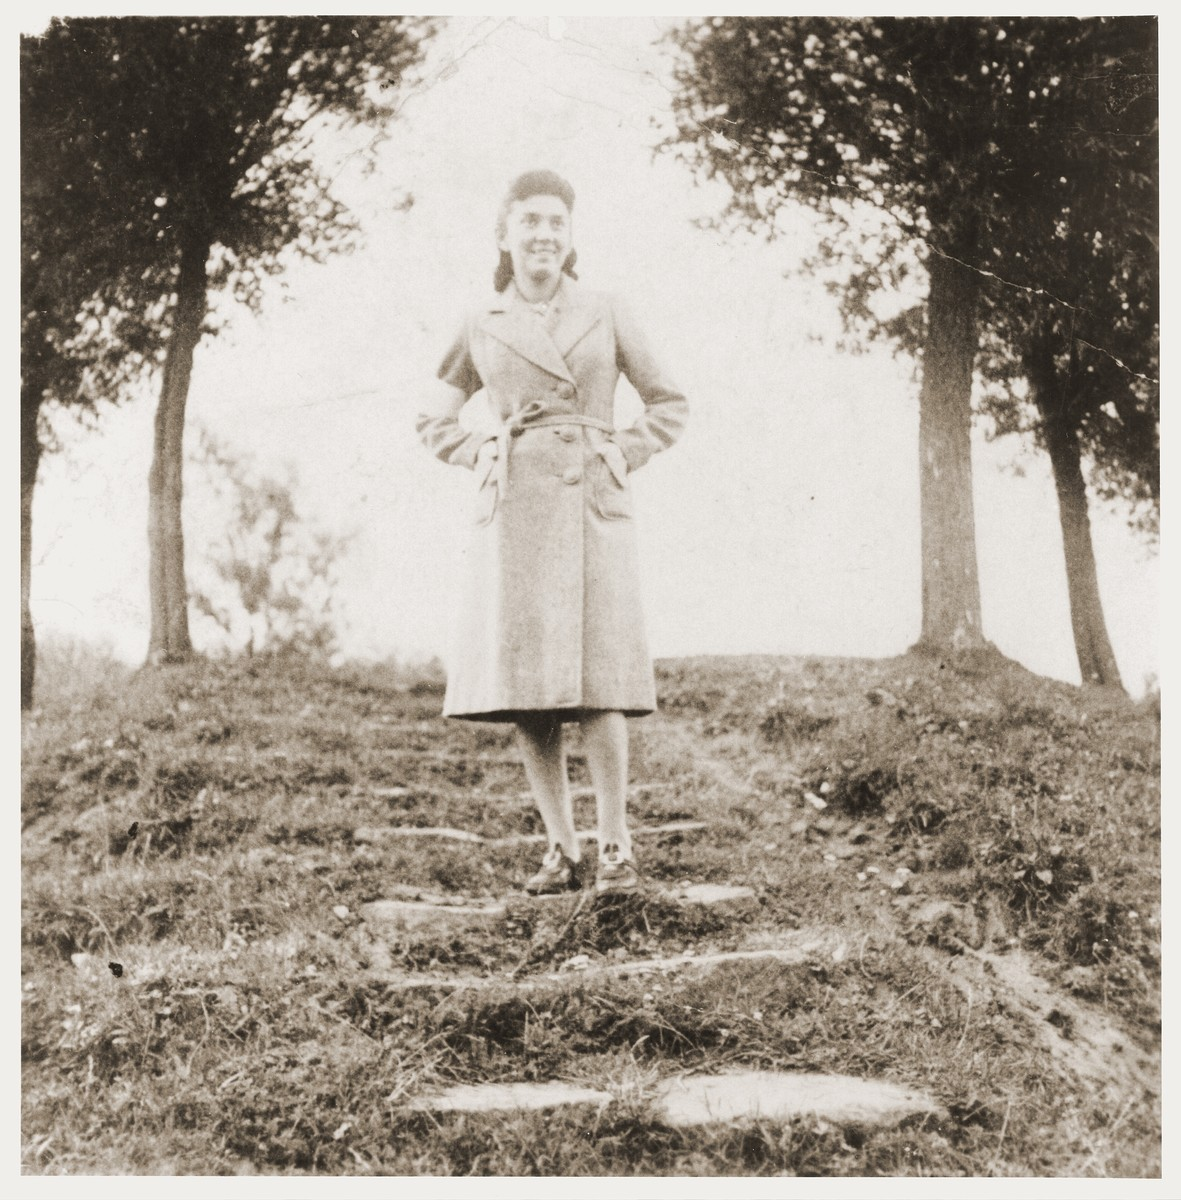 A Jewish girl, wearing an armband, poses in a park in Zabno.    Pictured is Ms. Meyerhof, the daughter of a hardware store owner in Zabno.  She did not survive.